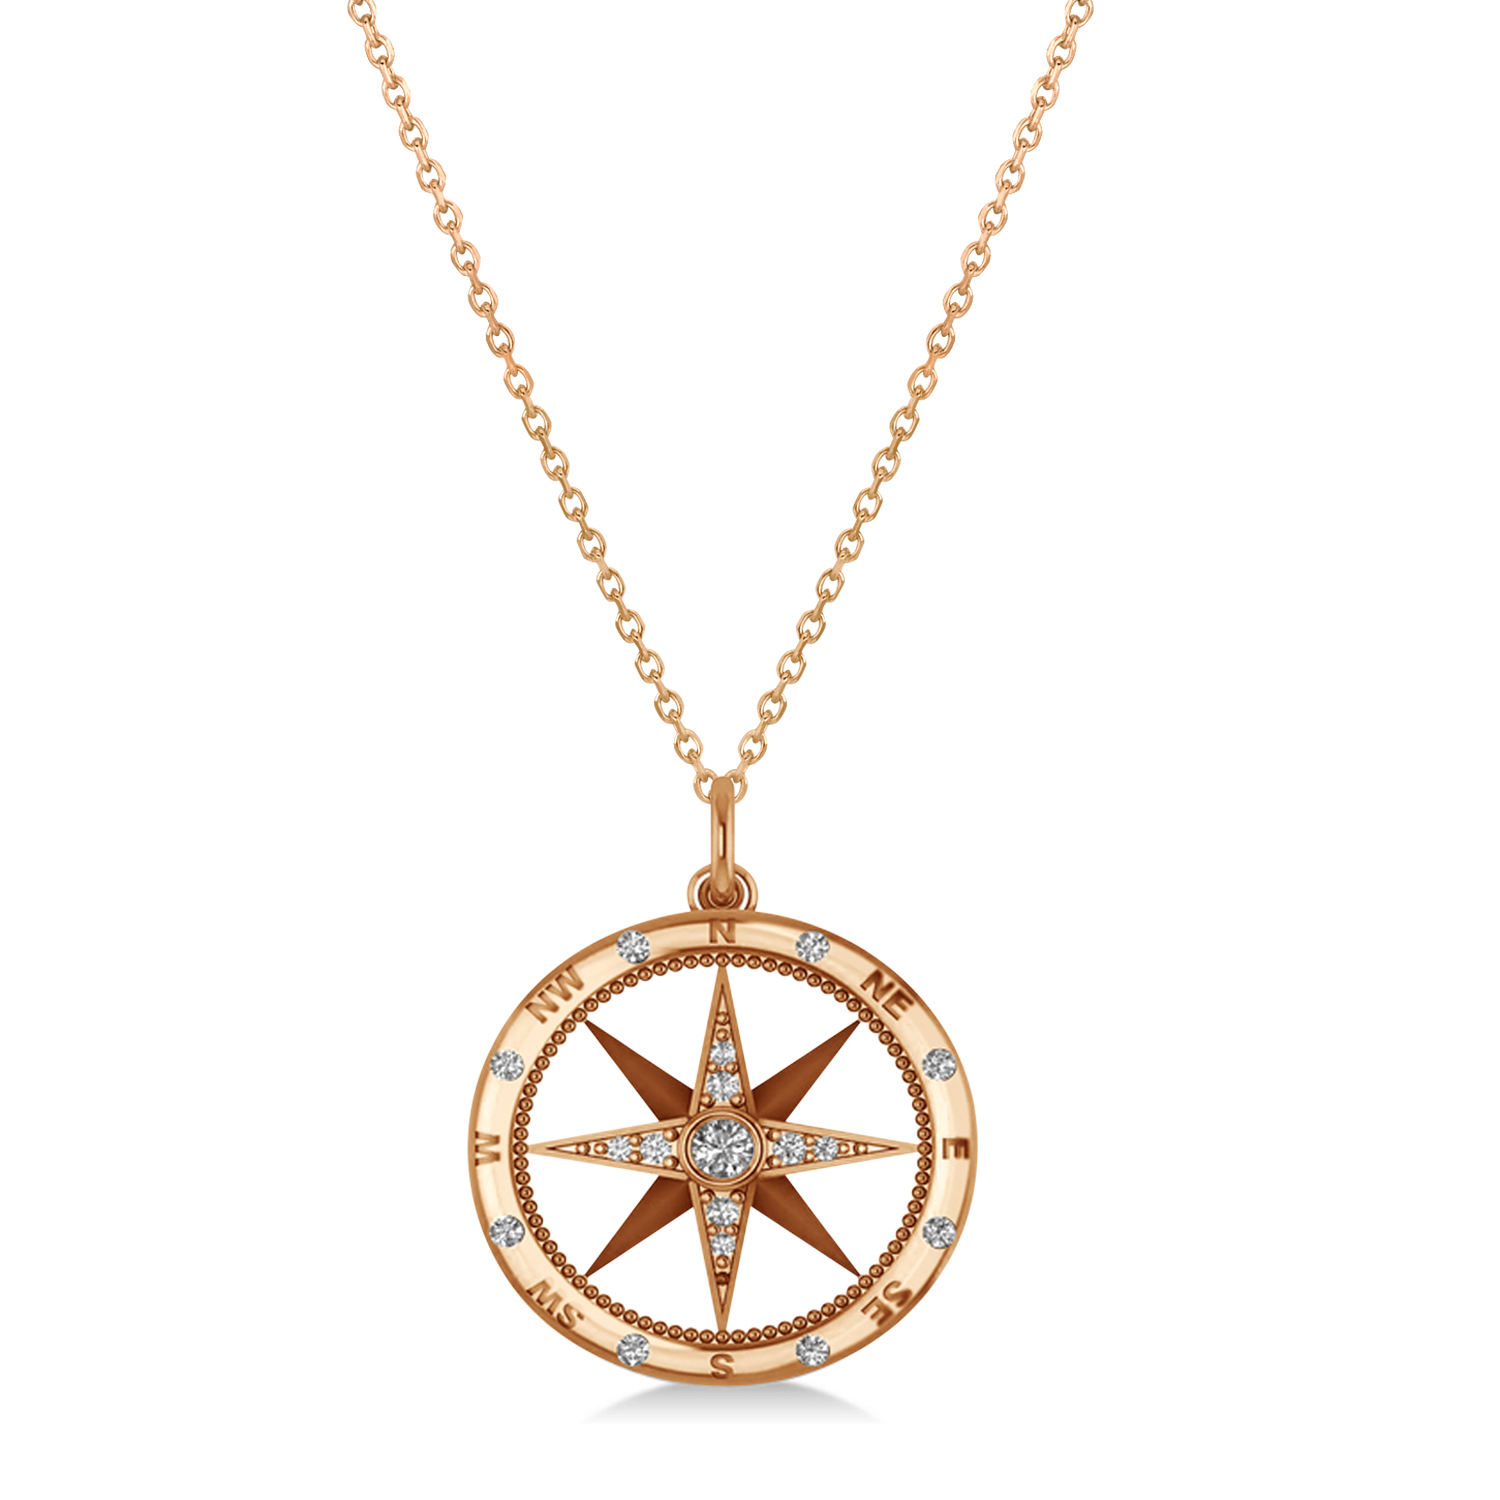 Compass necklace pendant diamond accented 18k rose gold for Jh jewelry guarantee 2 years